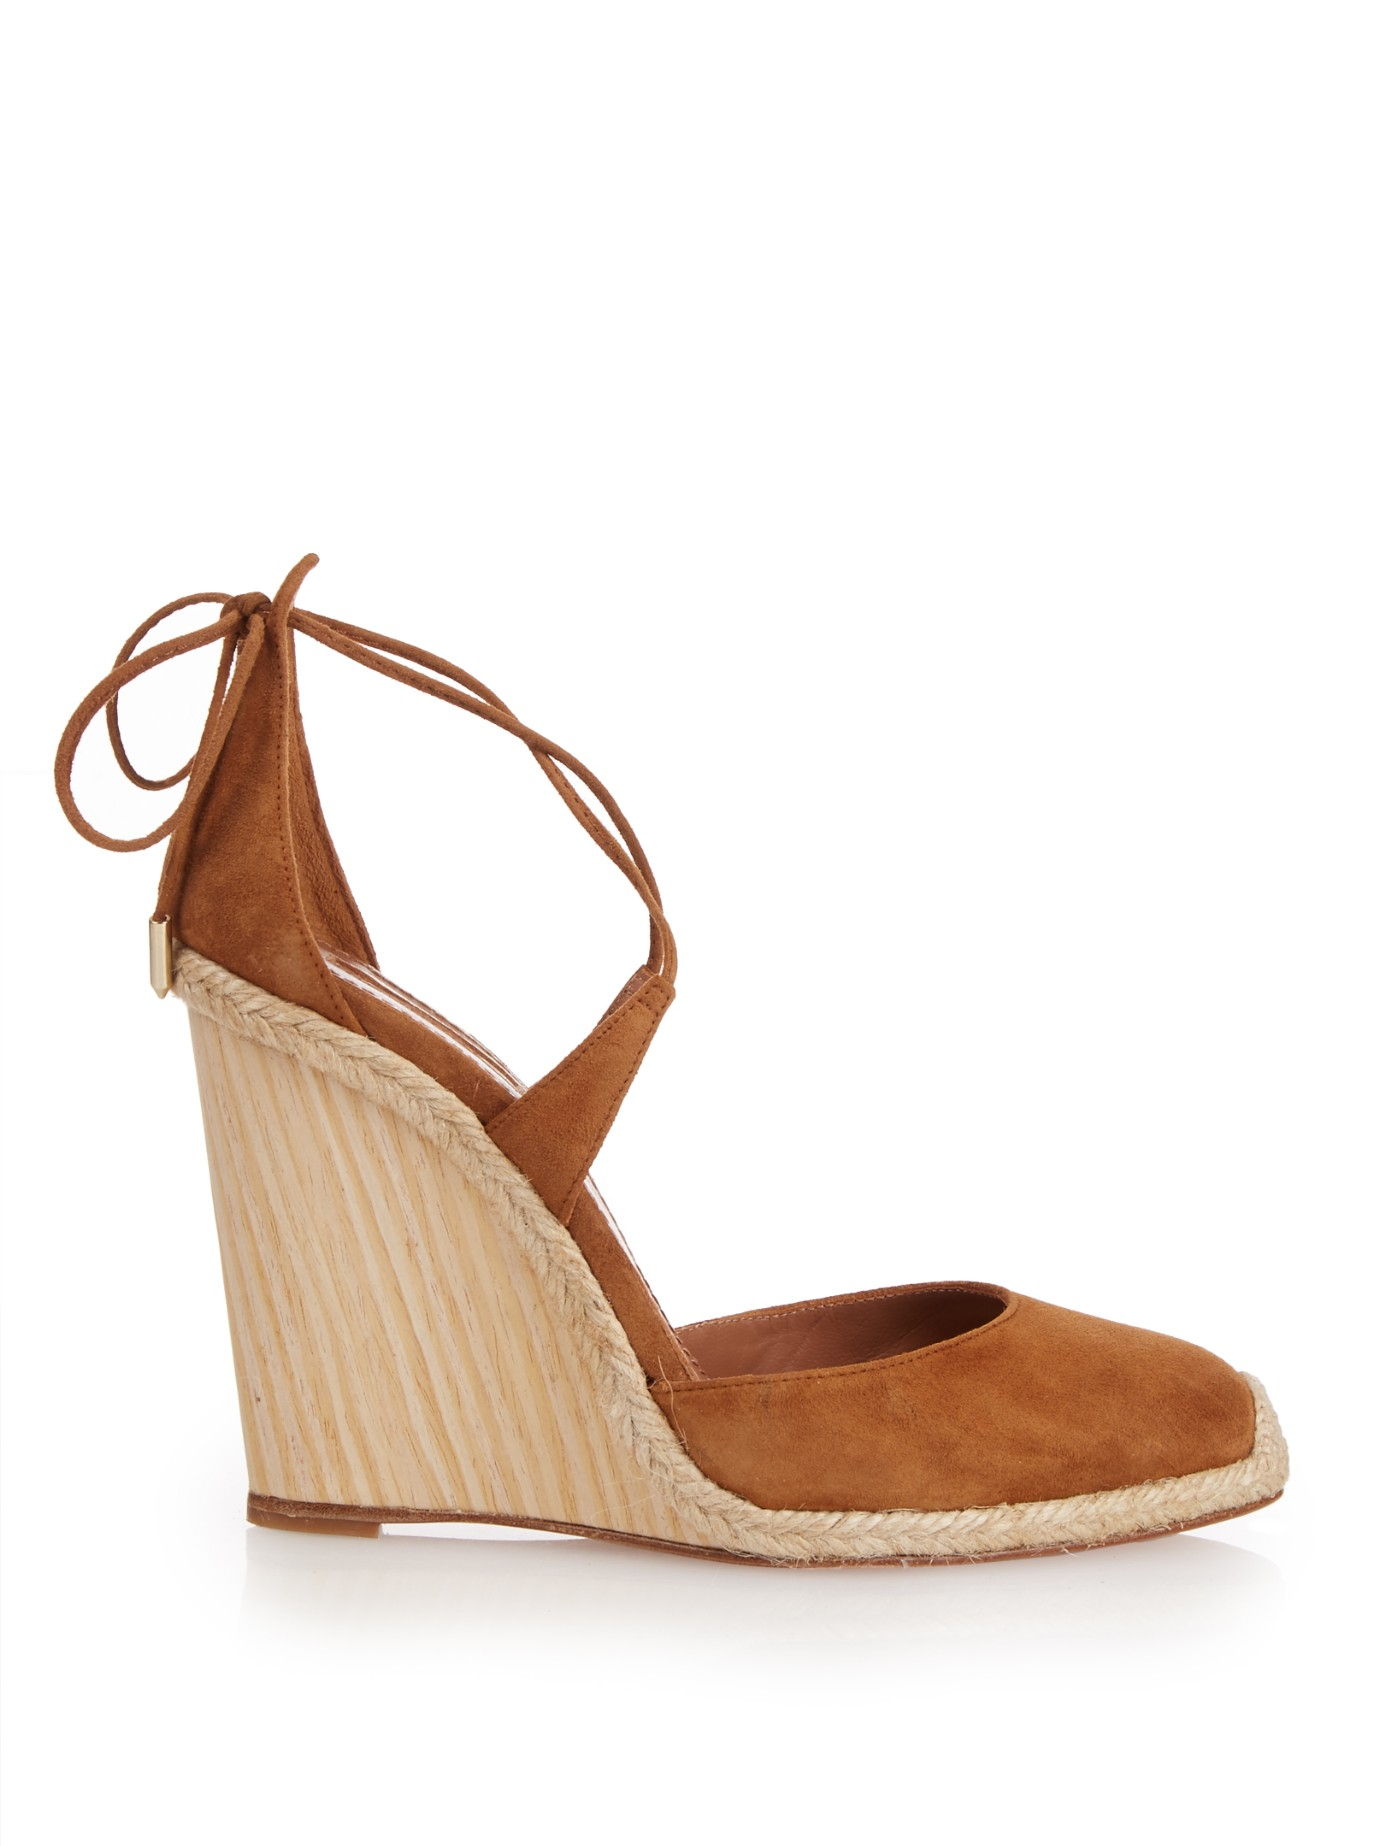 114ab7a0b5b Lyst - Aquazzura Karlie Espadrille Wedge Sandals in Brown